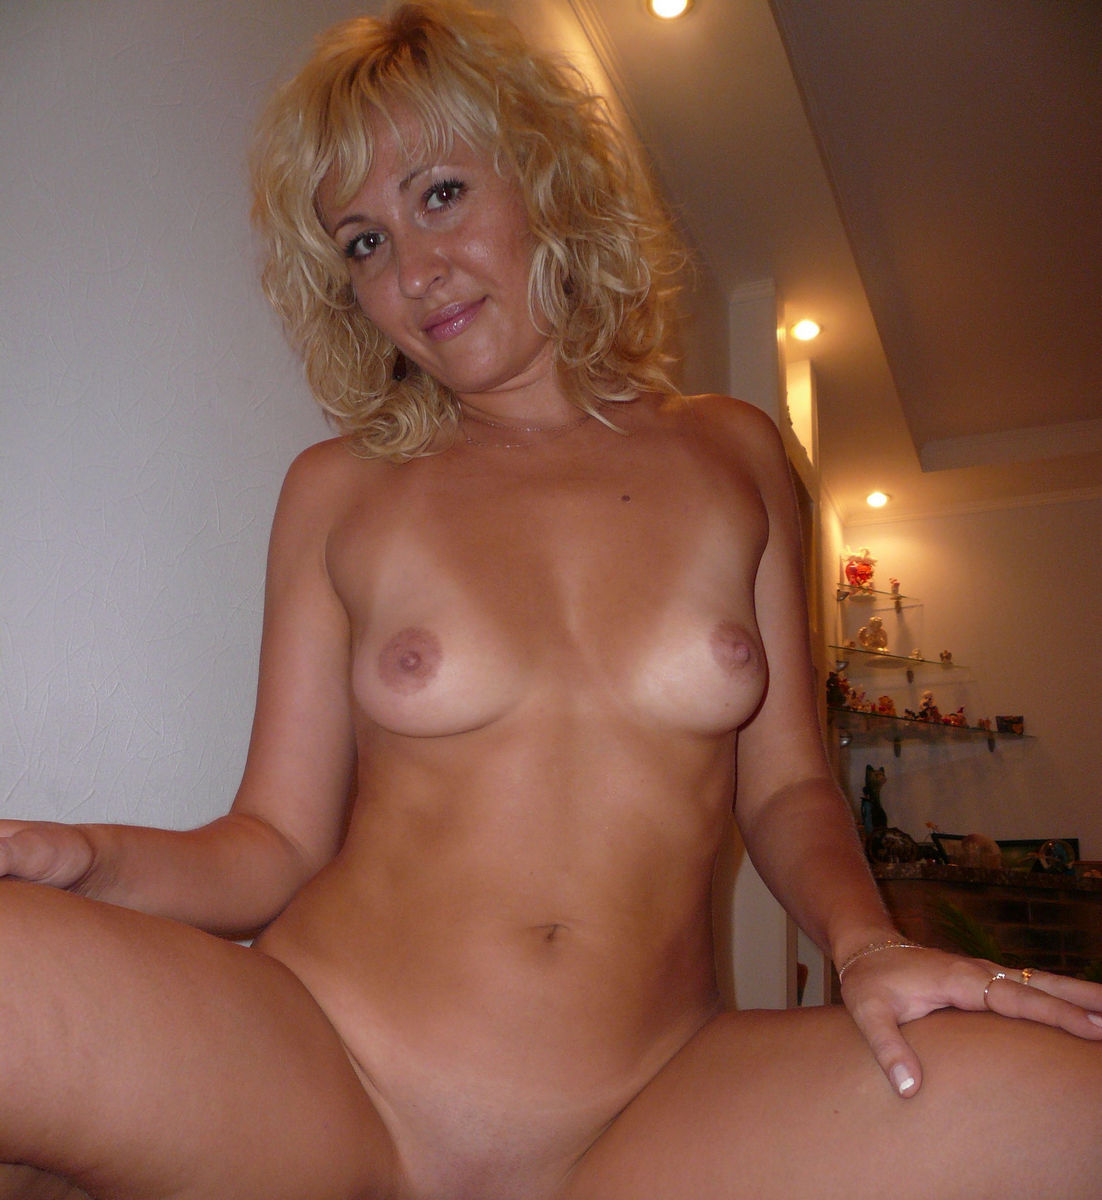 Speaking, hot amateur blonde nude